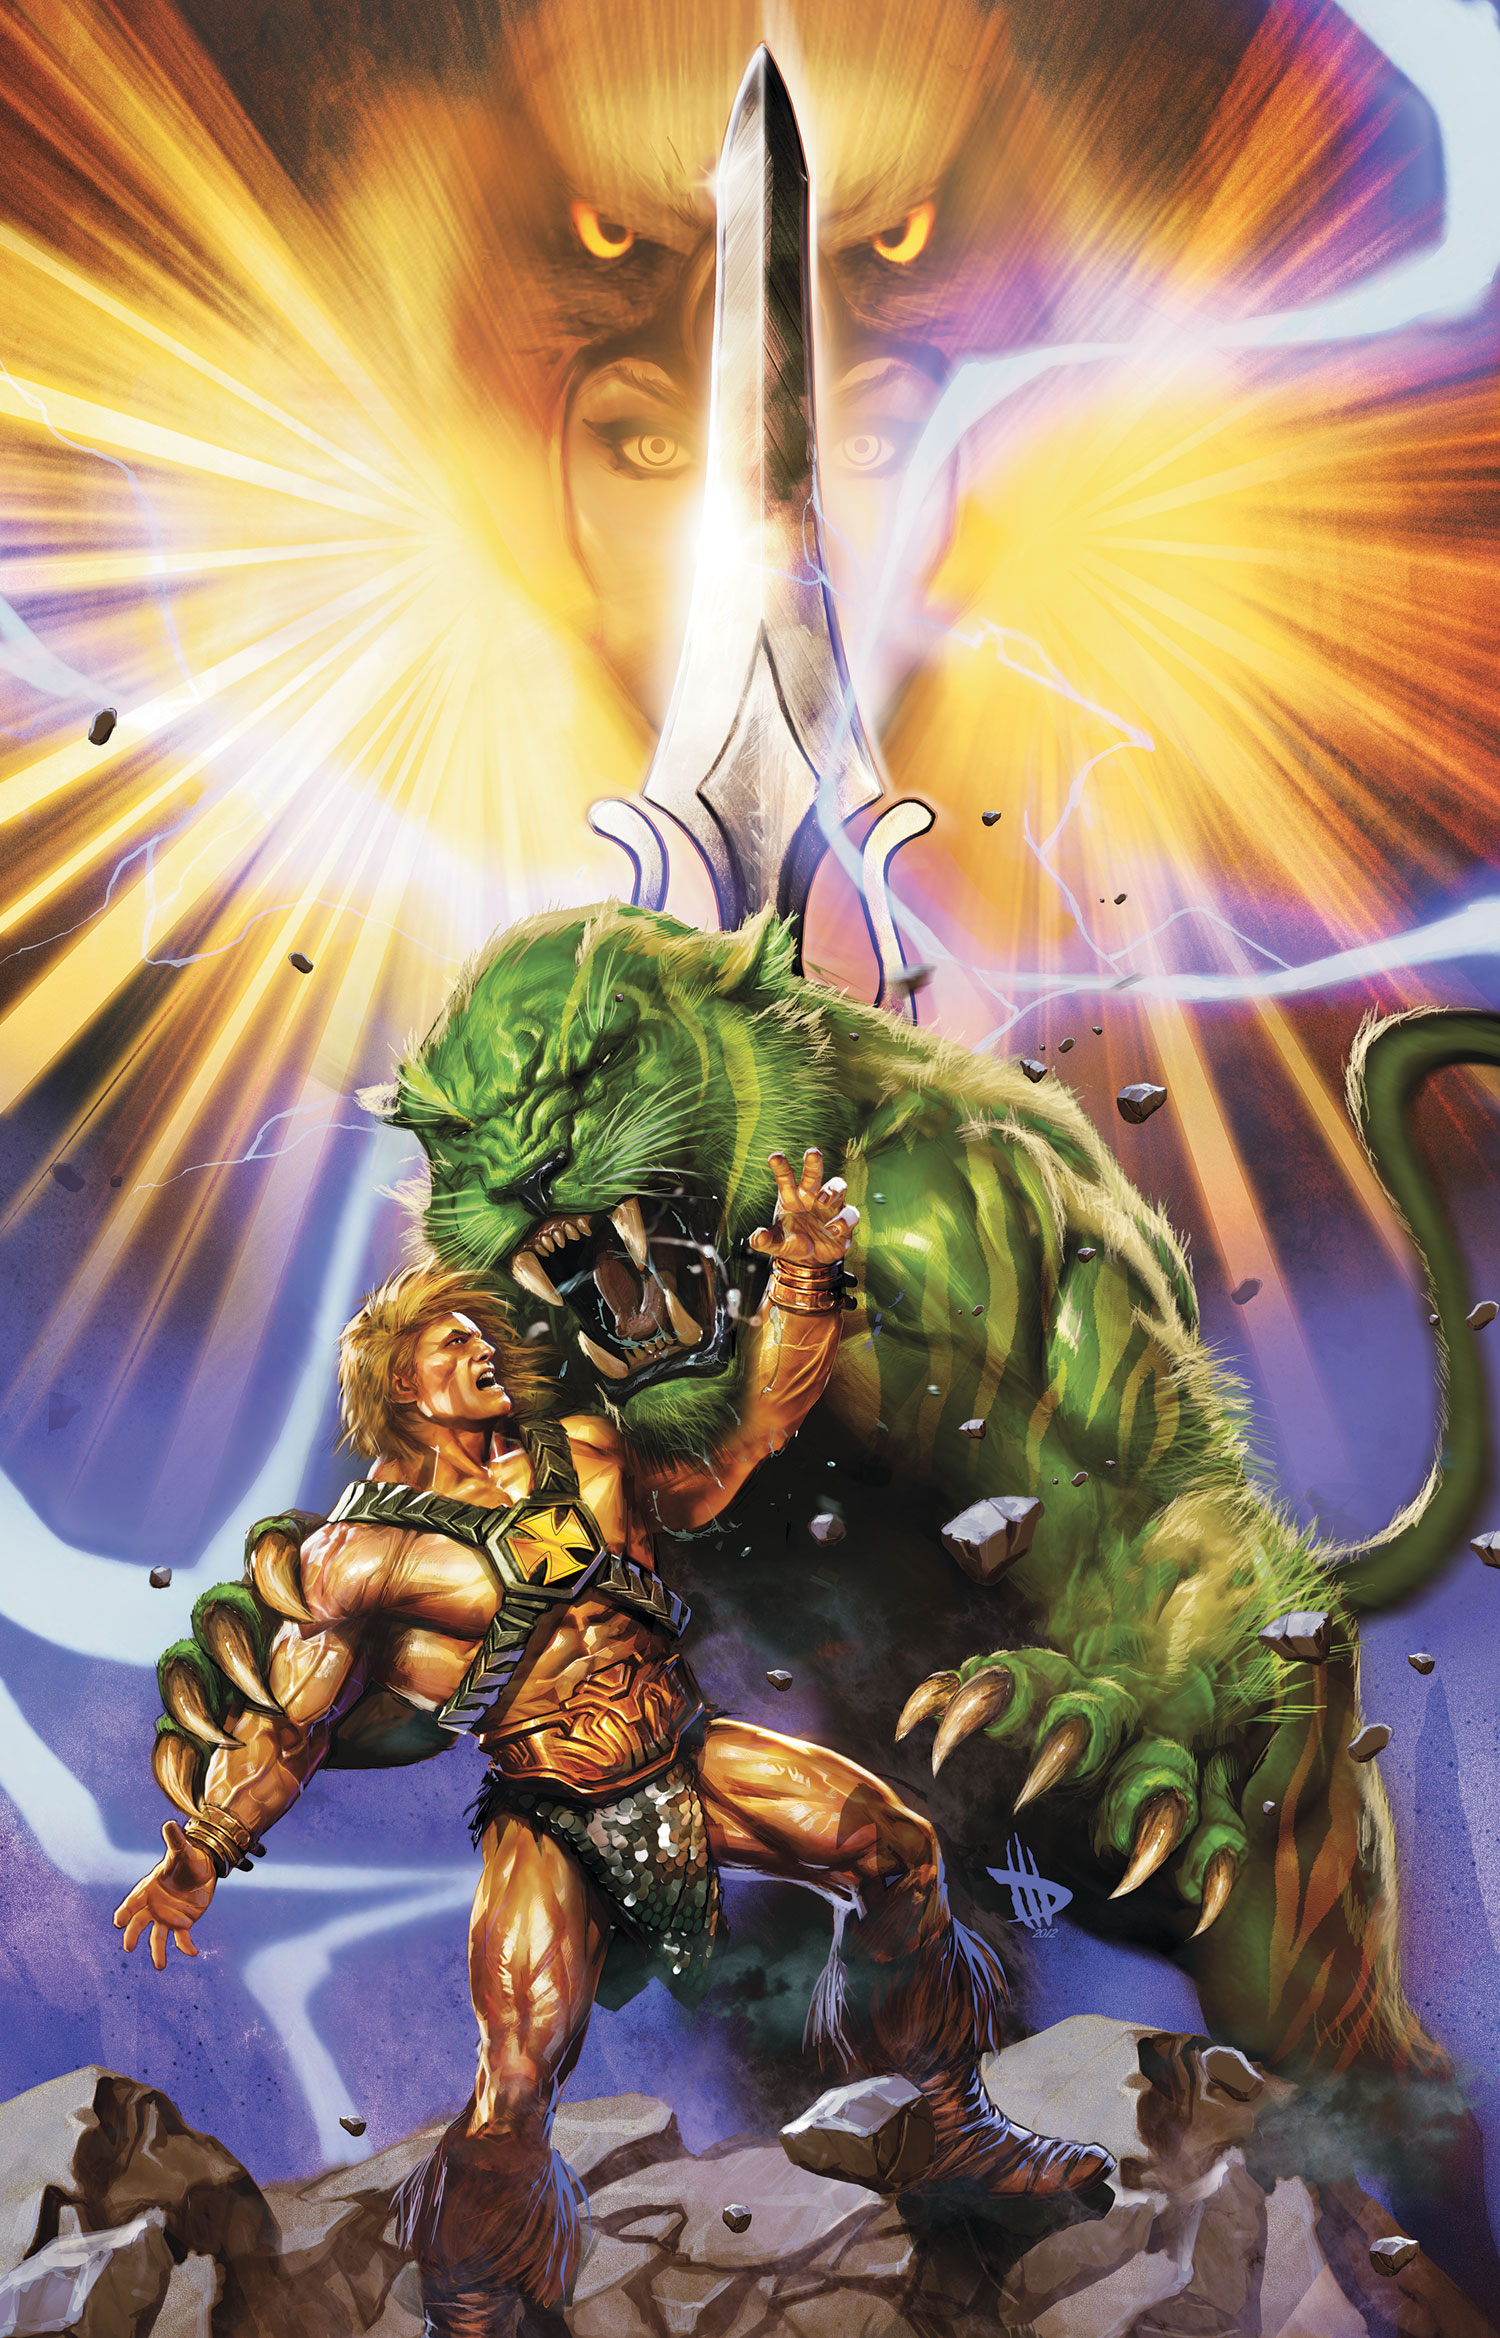 He Man #5 by Dave Wilkins